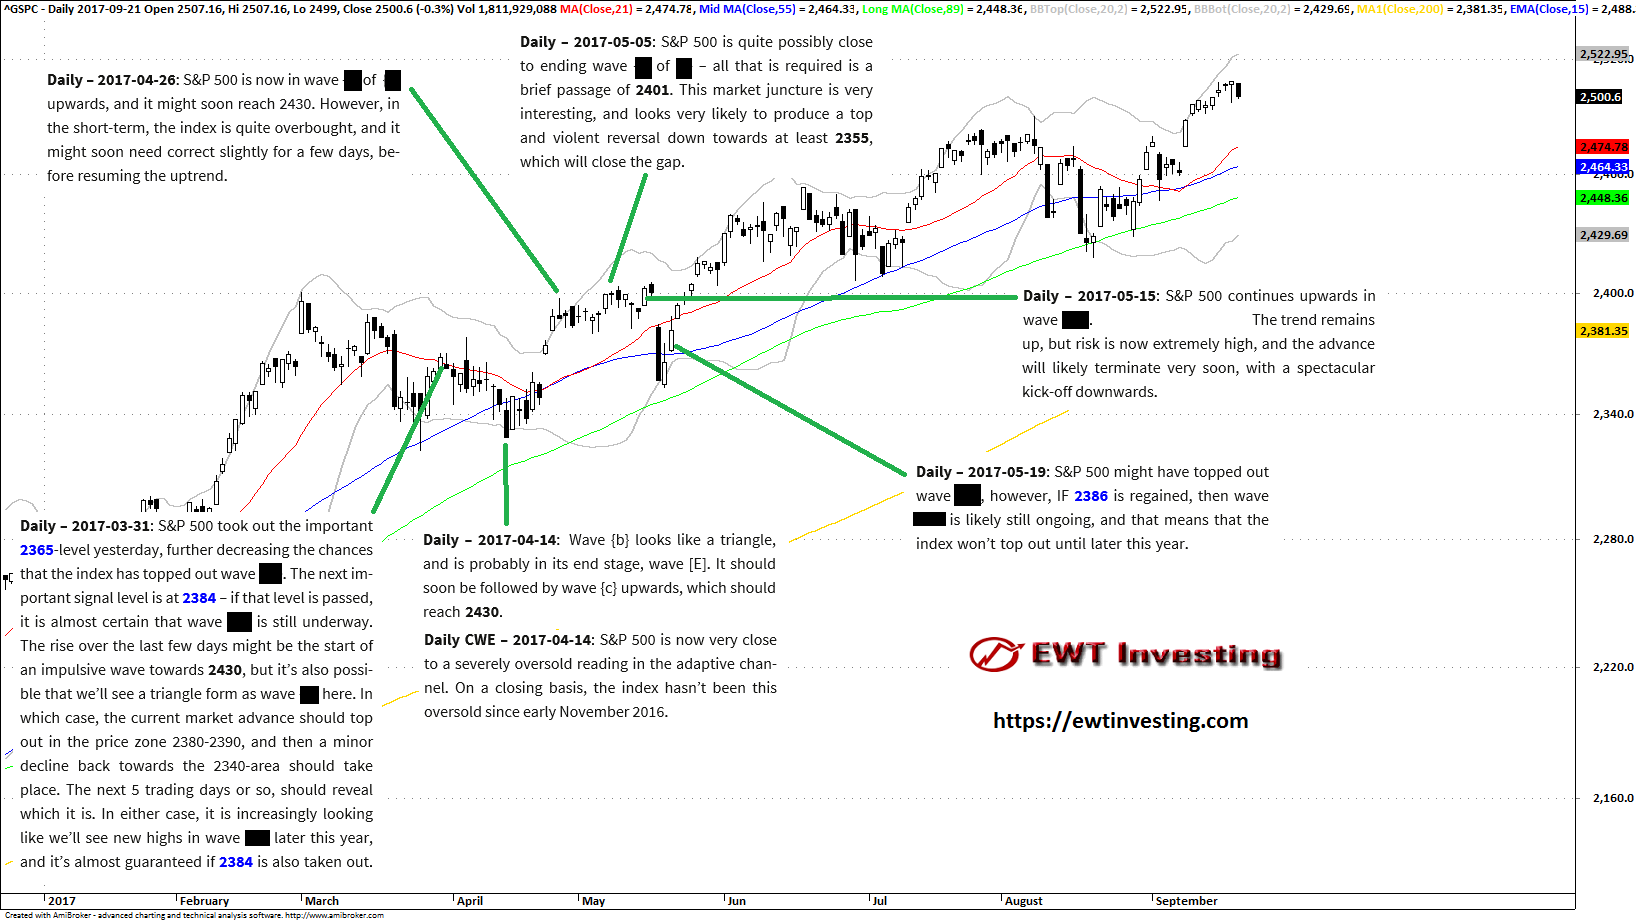 Elliott Wave analysis summary for S&P 500, by EWT Investing